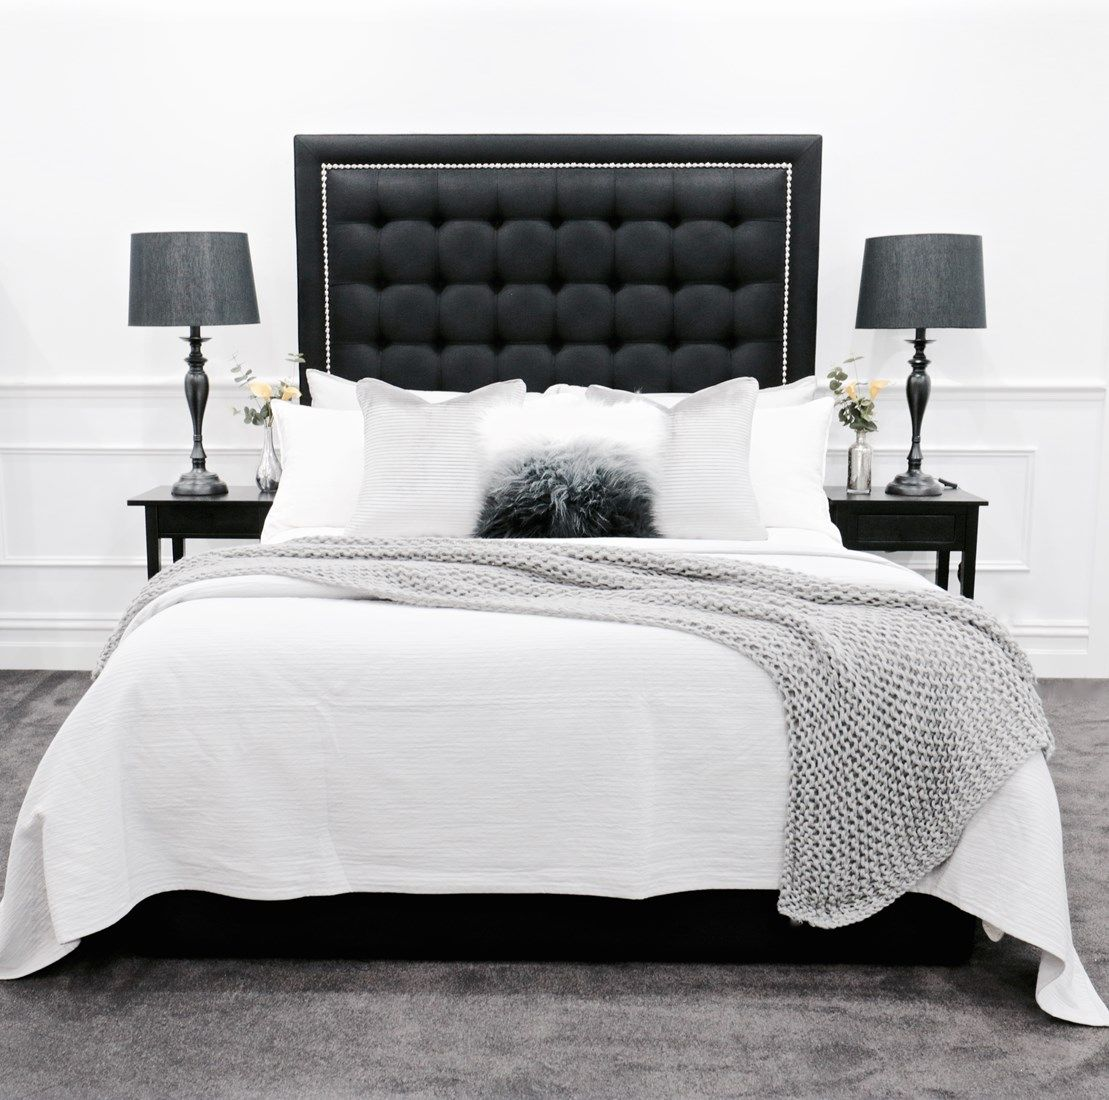 Upholstered Beds Bedheads Headboards Oned Bed Bedhead Chesterfield